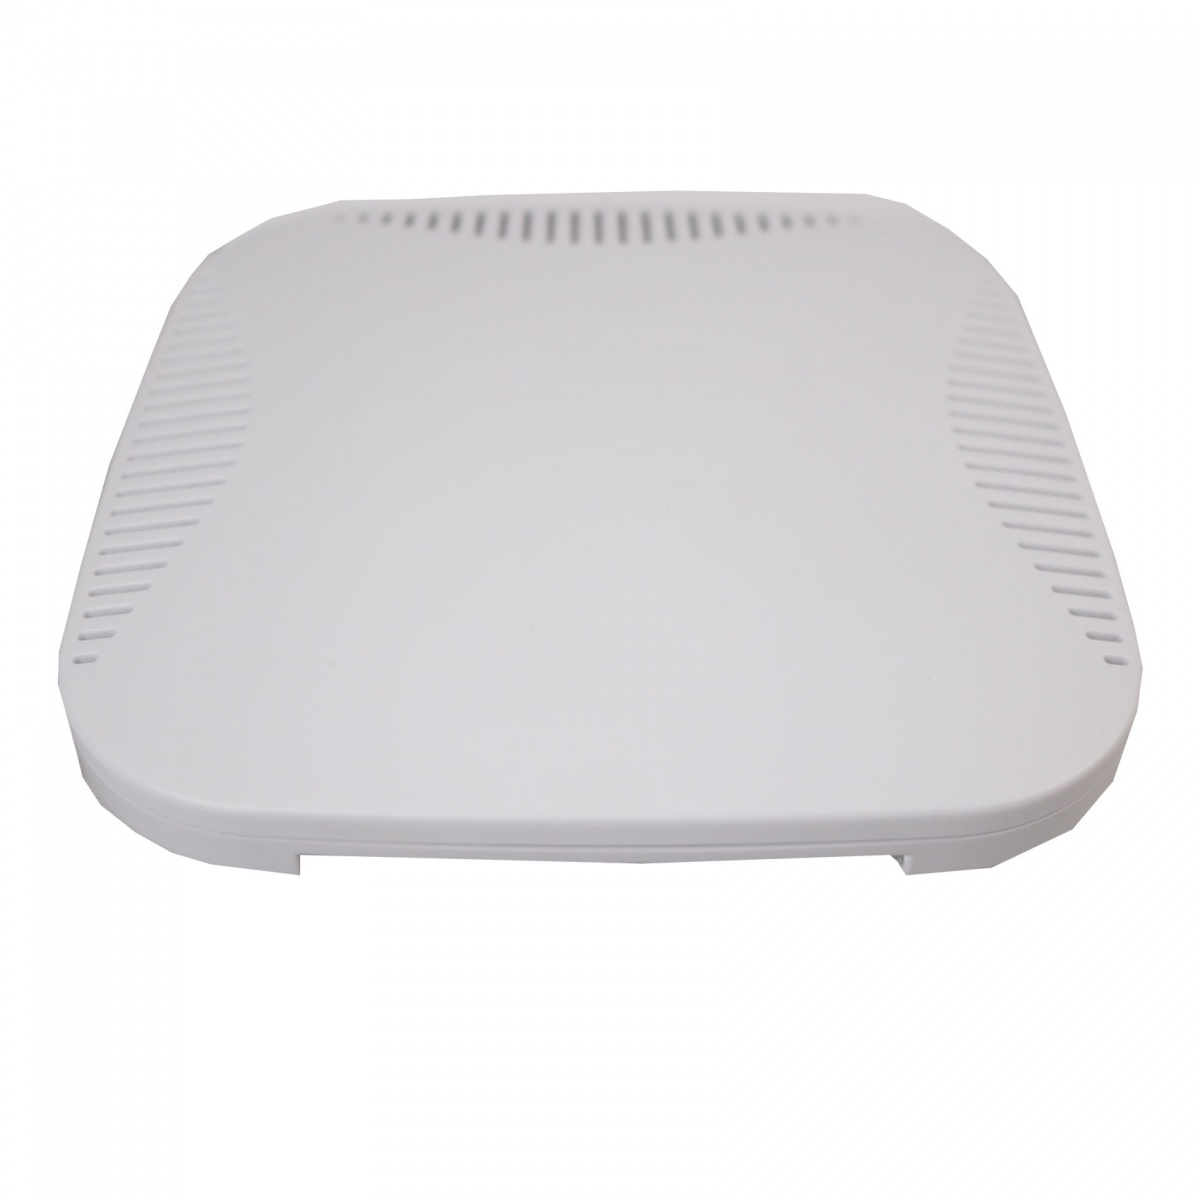 Ceiling Wall Wifi Access Point  - White